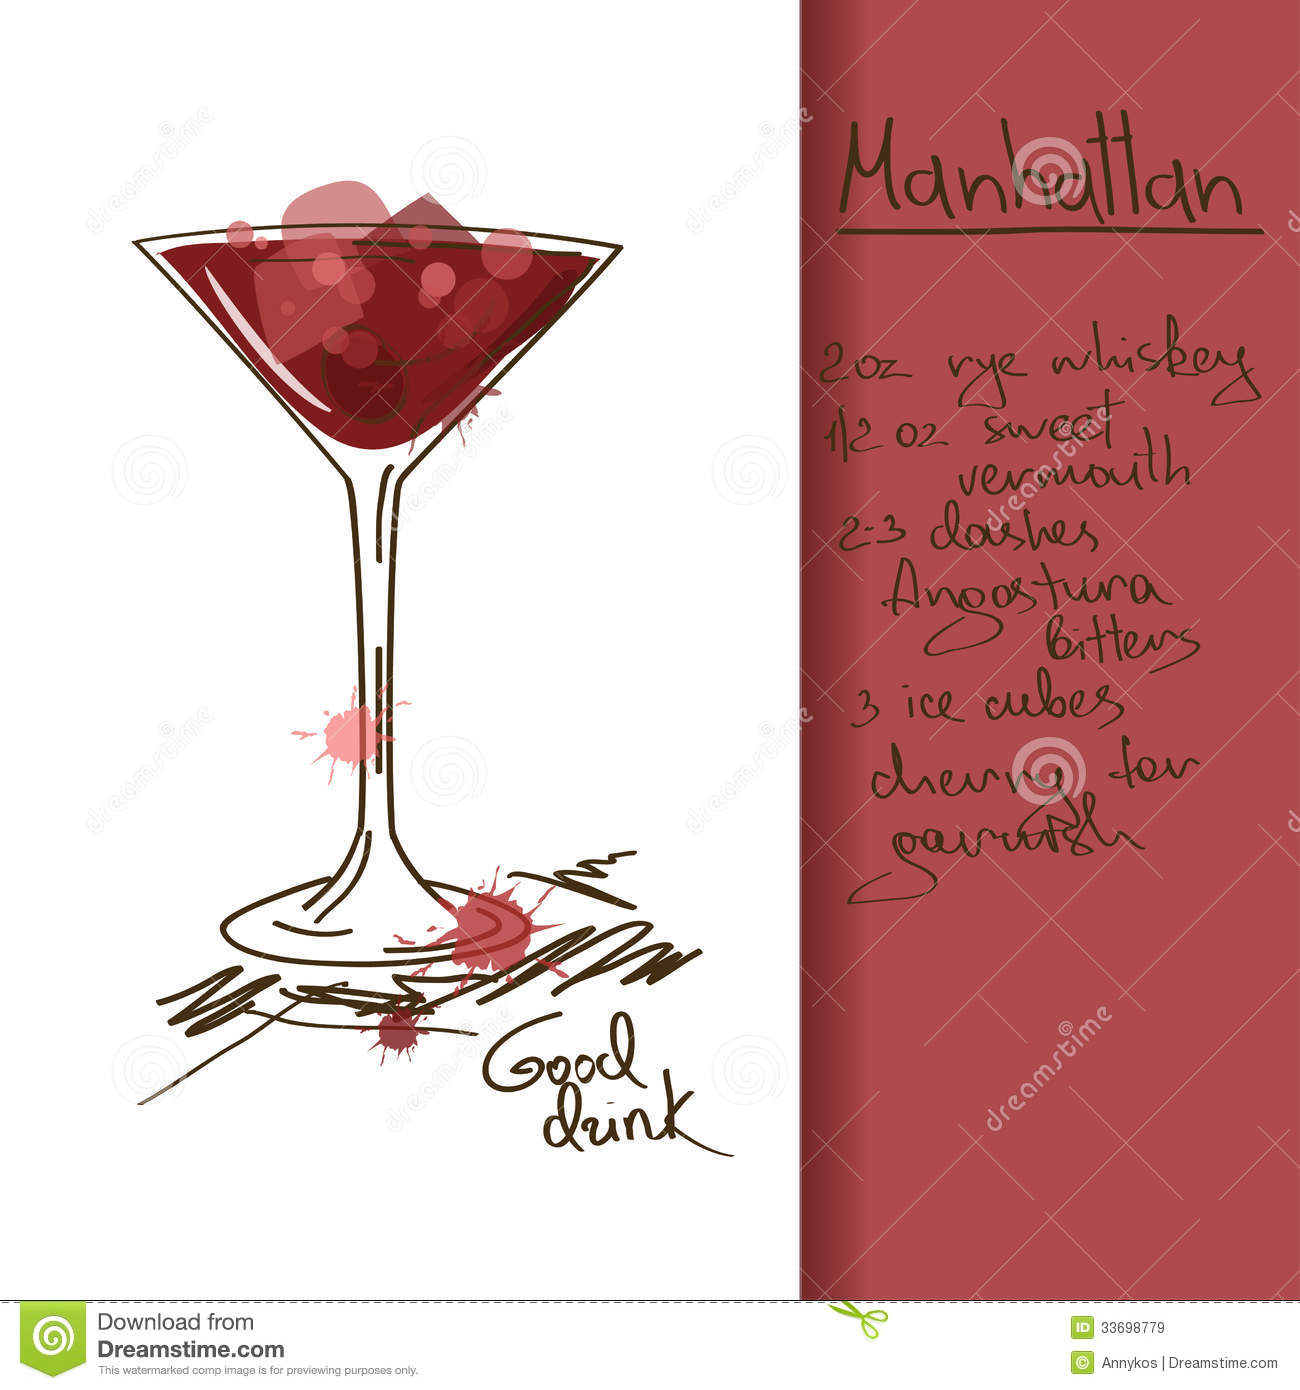 Manhattan Cocktail Stock Illustrations 699 Manhattan Cocktail Stock Illustrations Vectors Clipart Dreamstime